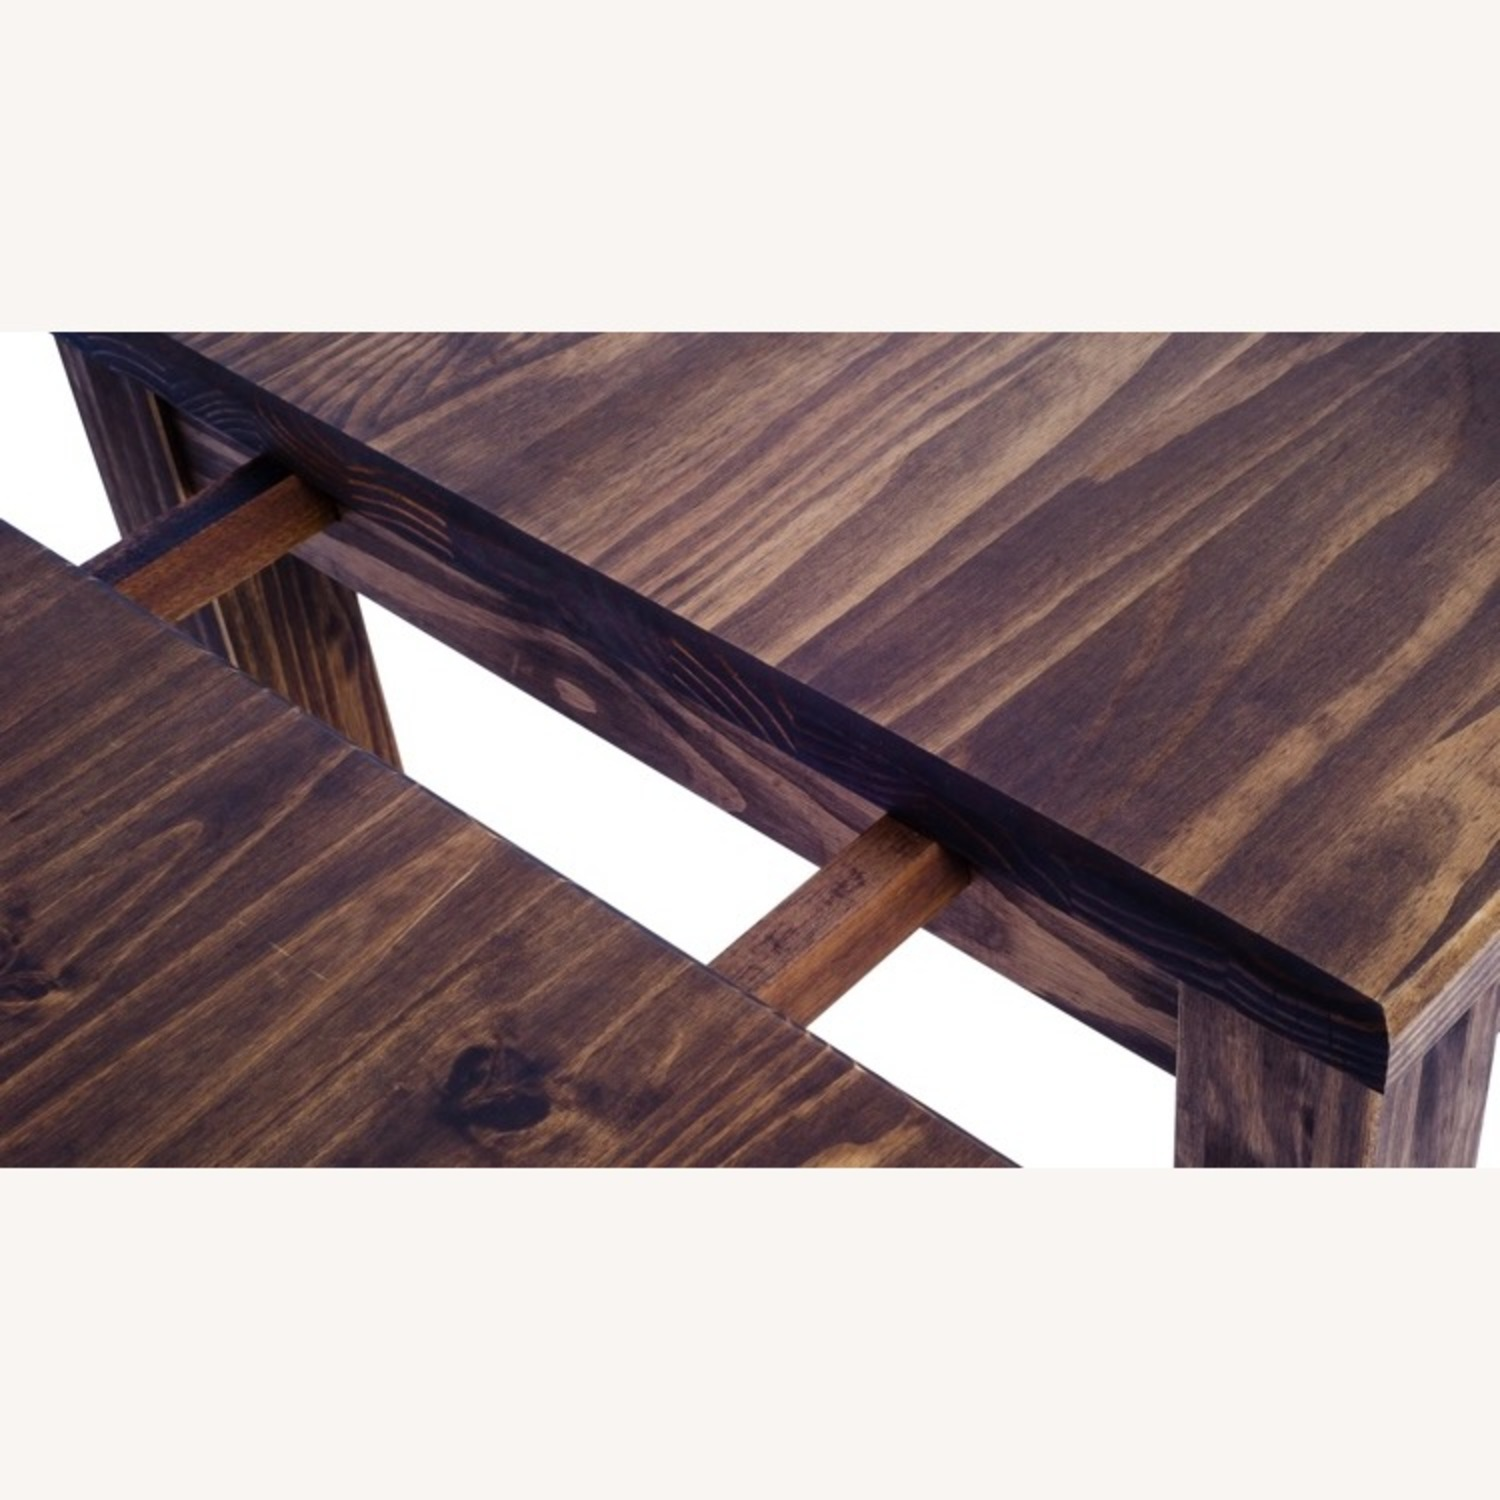 Urban Design Furnishings Dinning Table Extension Sits 10-12 - image-1